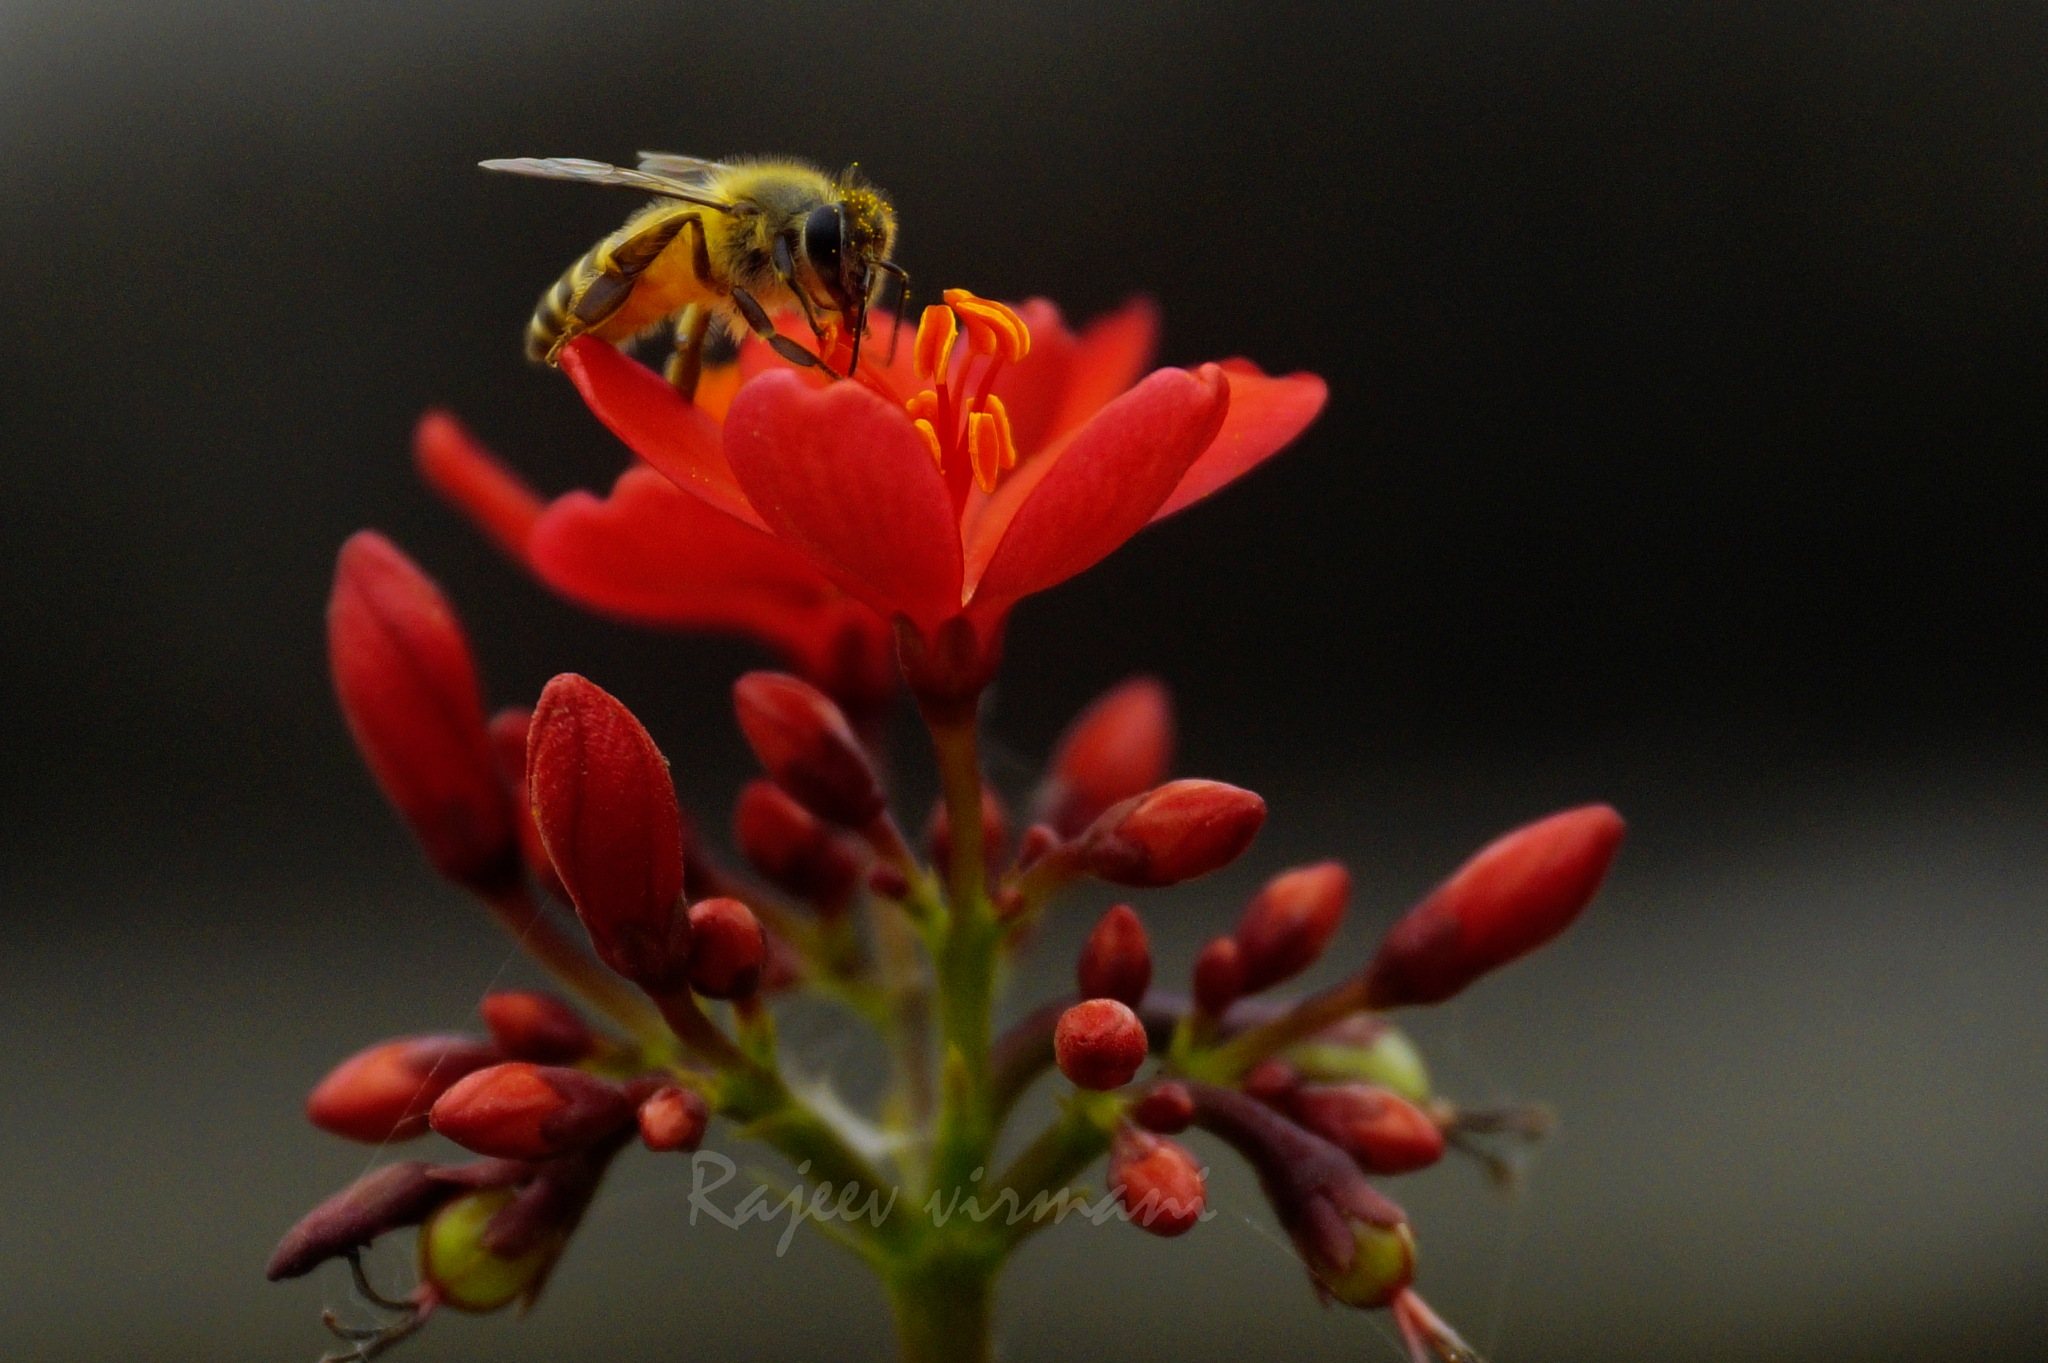 Busy Bee by Rajeev